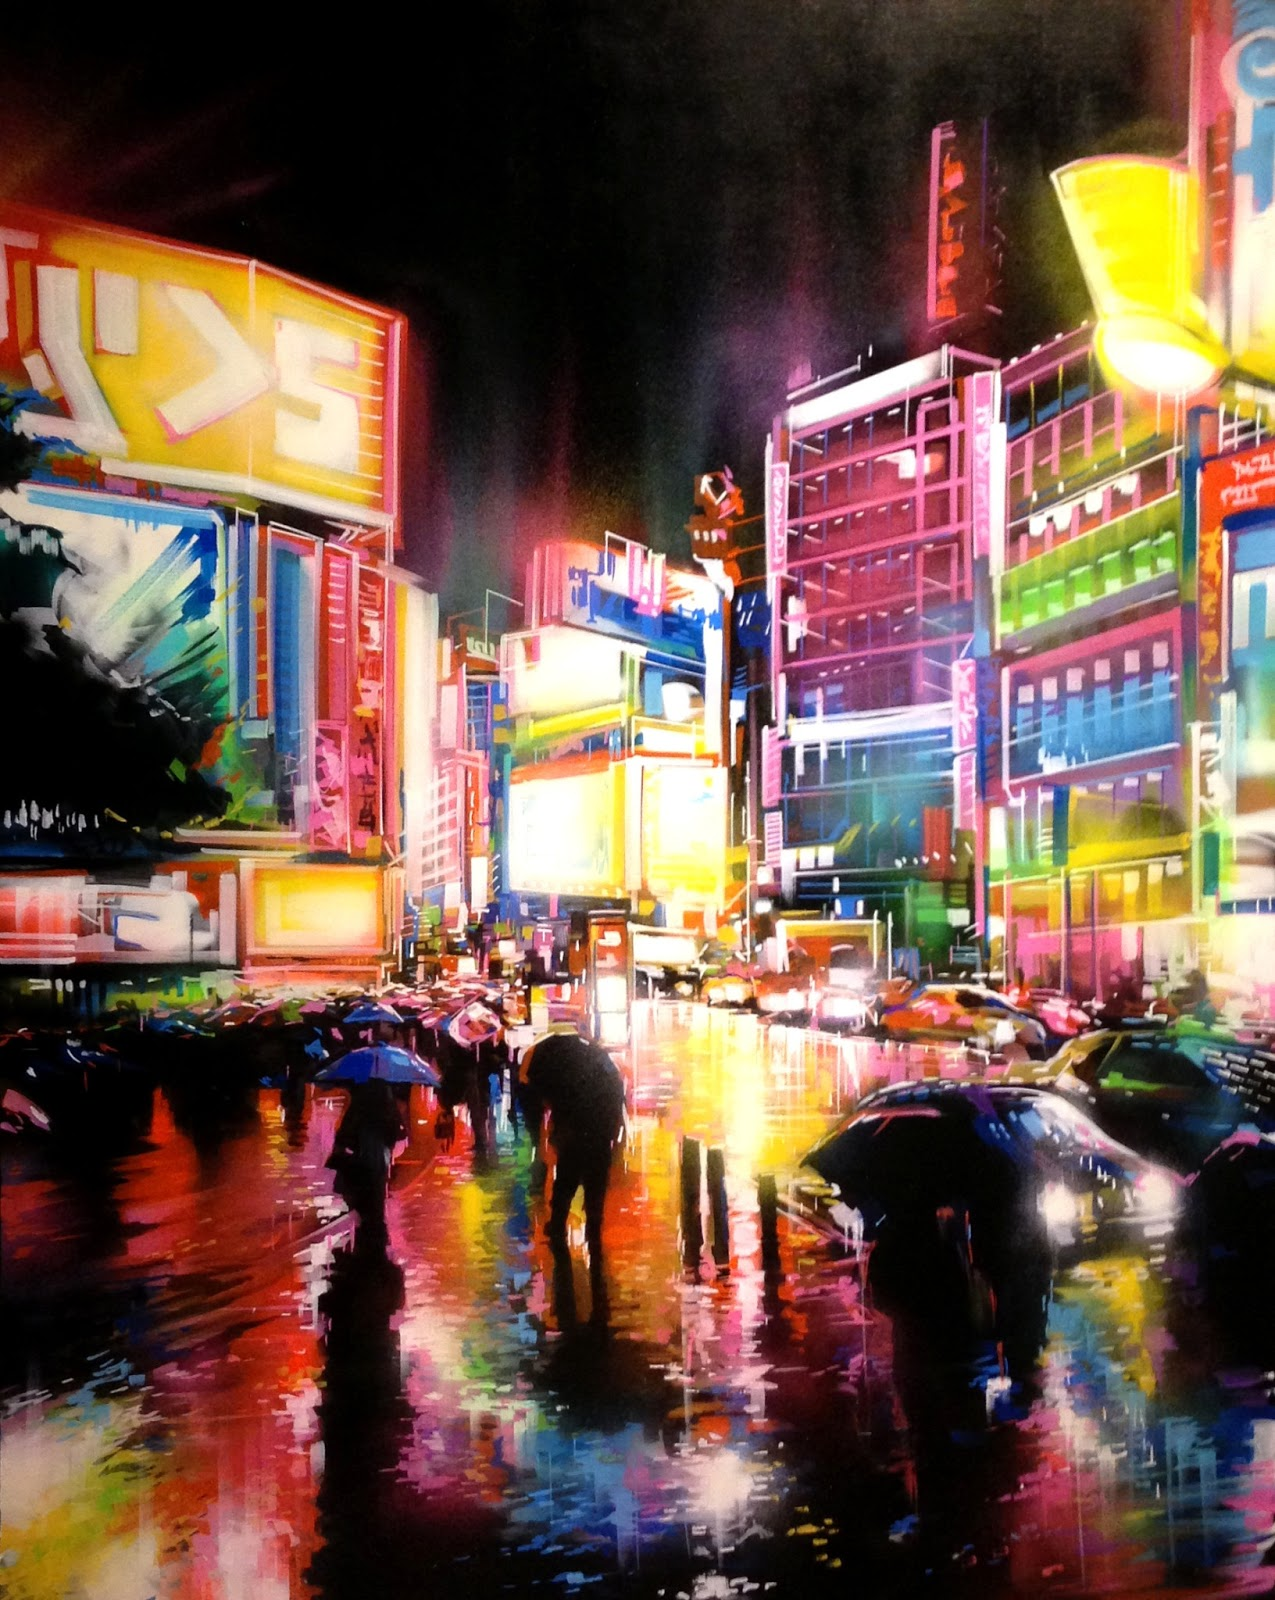 Urban Lights Kitchener Street Art Oclock Dan Kitchener Dank Tokyo Neon Show At